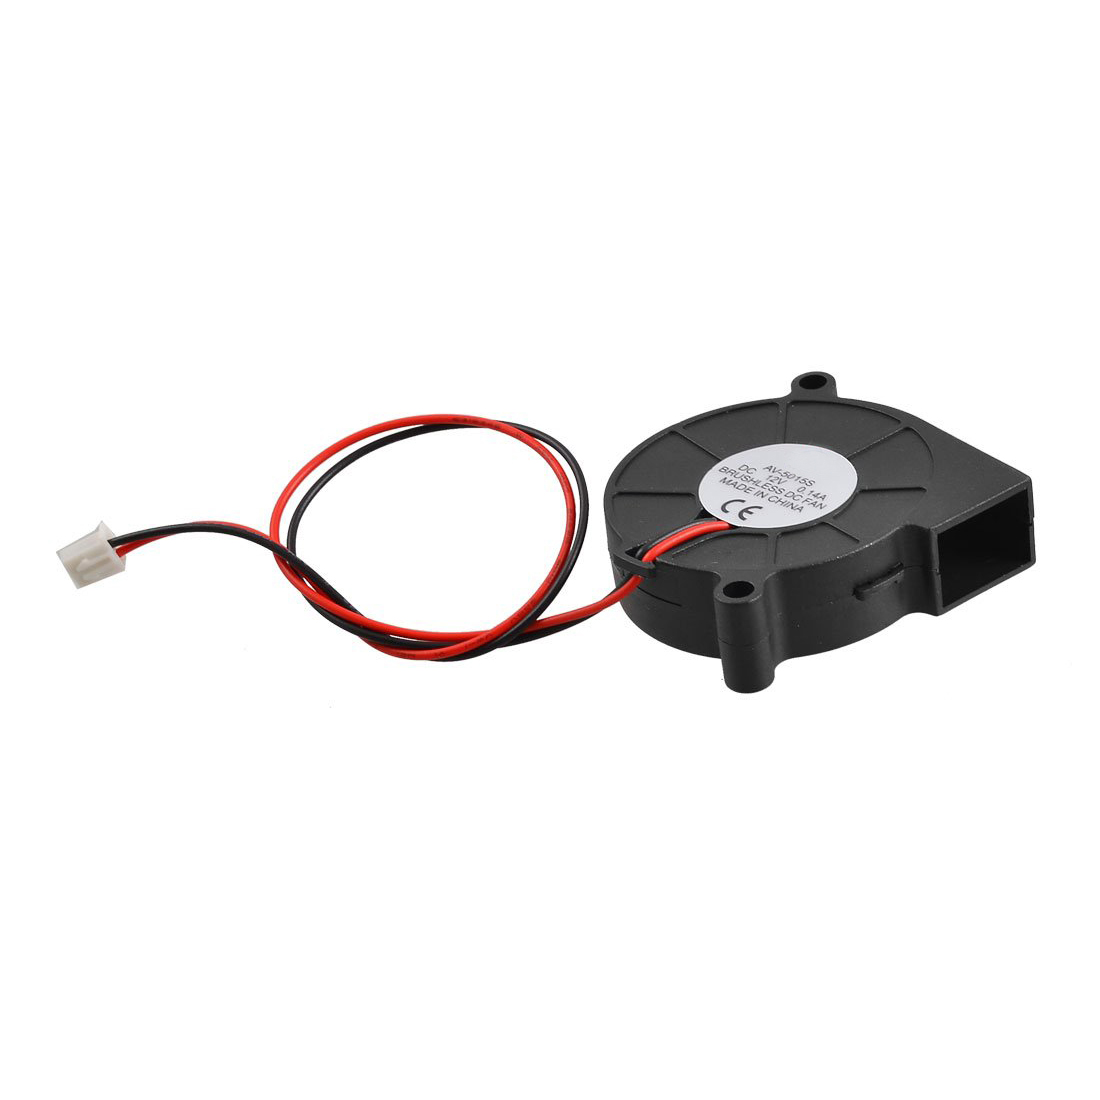 Black Brushless DC Cooling Blower Fan 5015S 12V 0.14A 50mm x 15mm Turbo Blower Fan 2 Wire gdstime 2 pcs 75mm x 15mm brushless 12 v 2pin dc cooling blower fan 7515 7cm 75x15mm 7 5cm